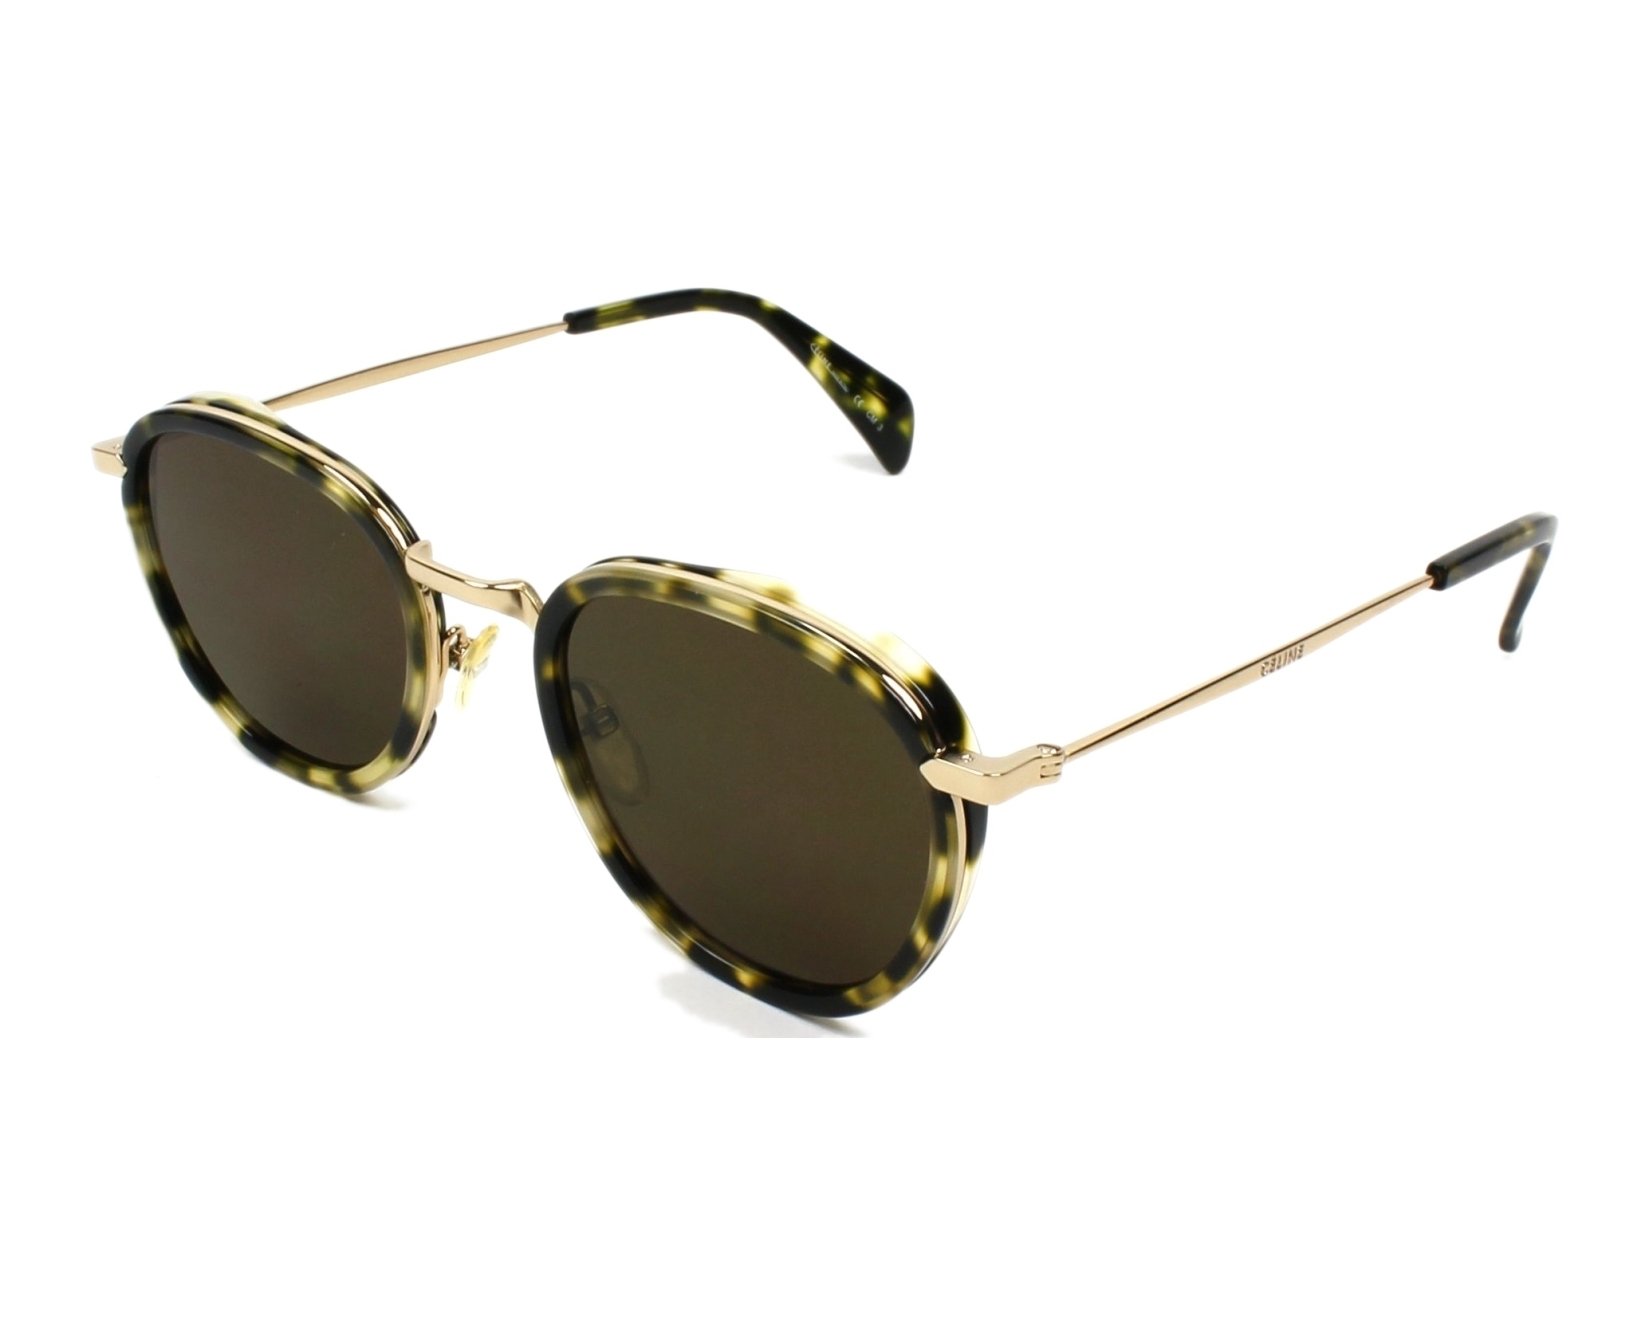 8b5ebe8549f01 Sunglasses Céline CL-41423 J1L EC 48-22 Havana Gold profile view